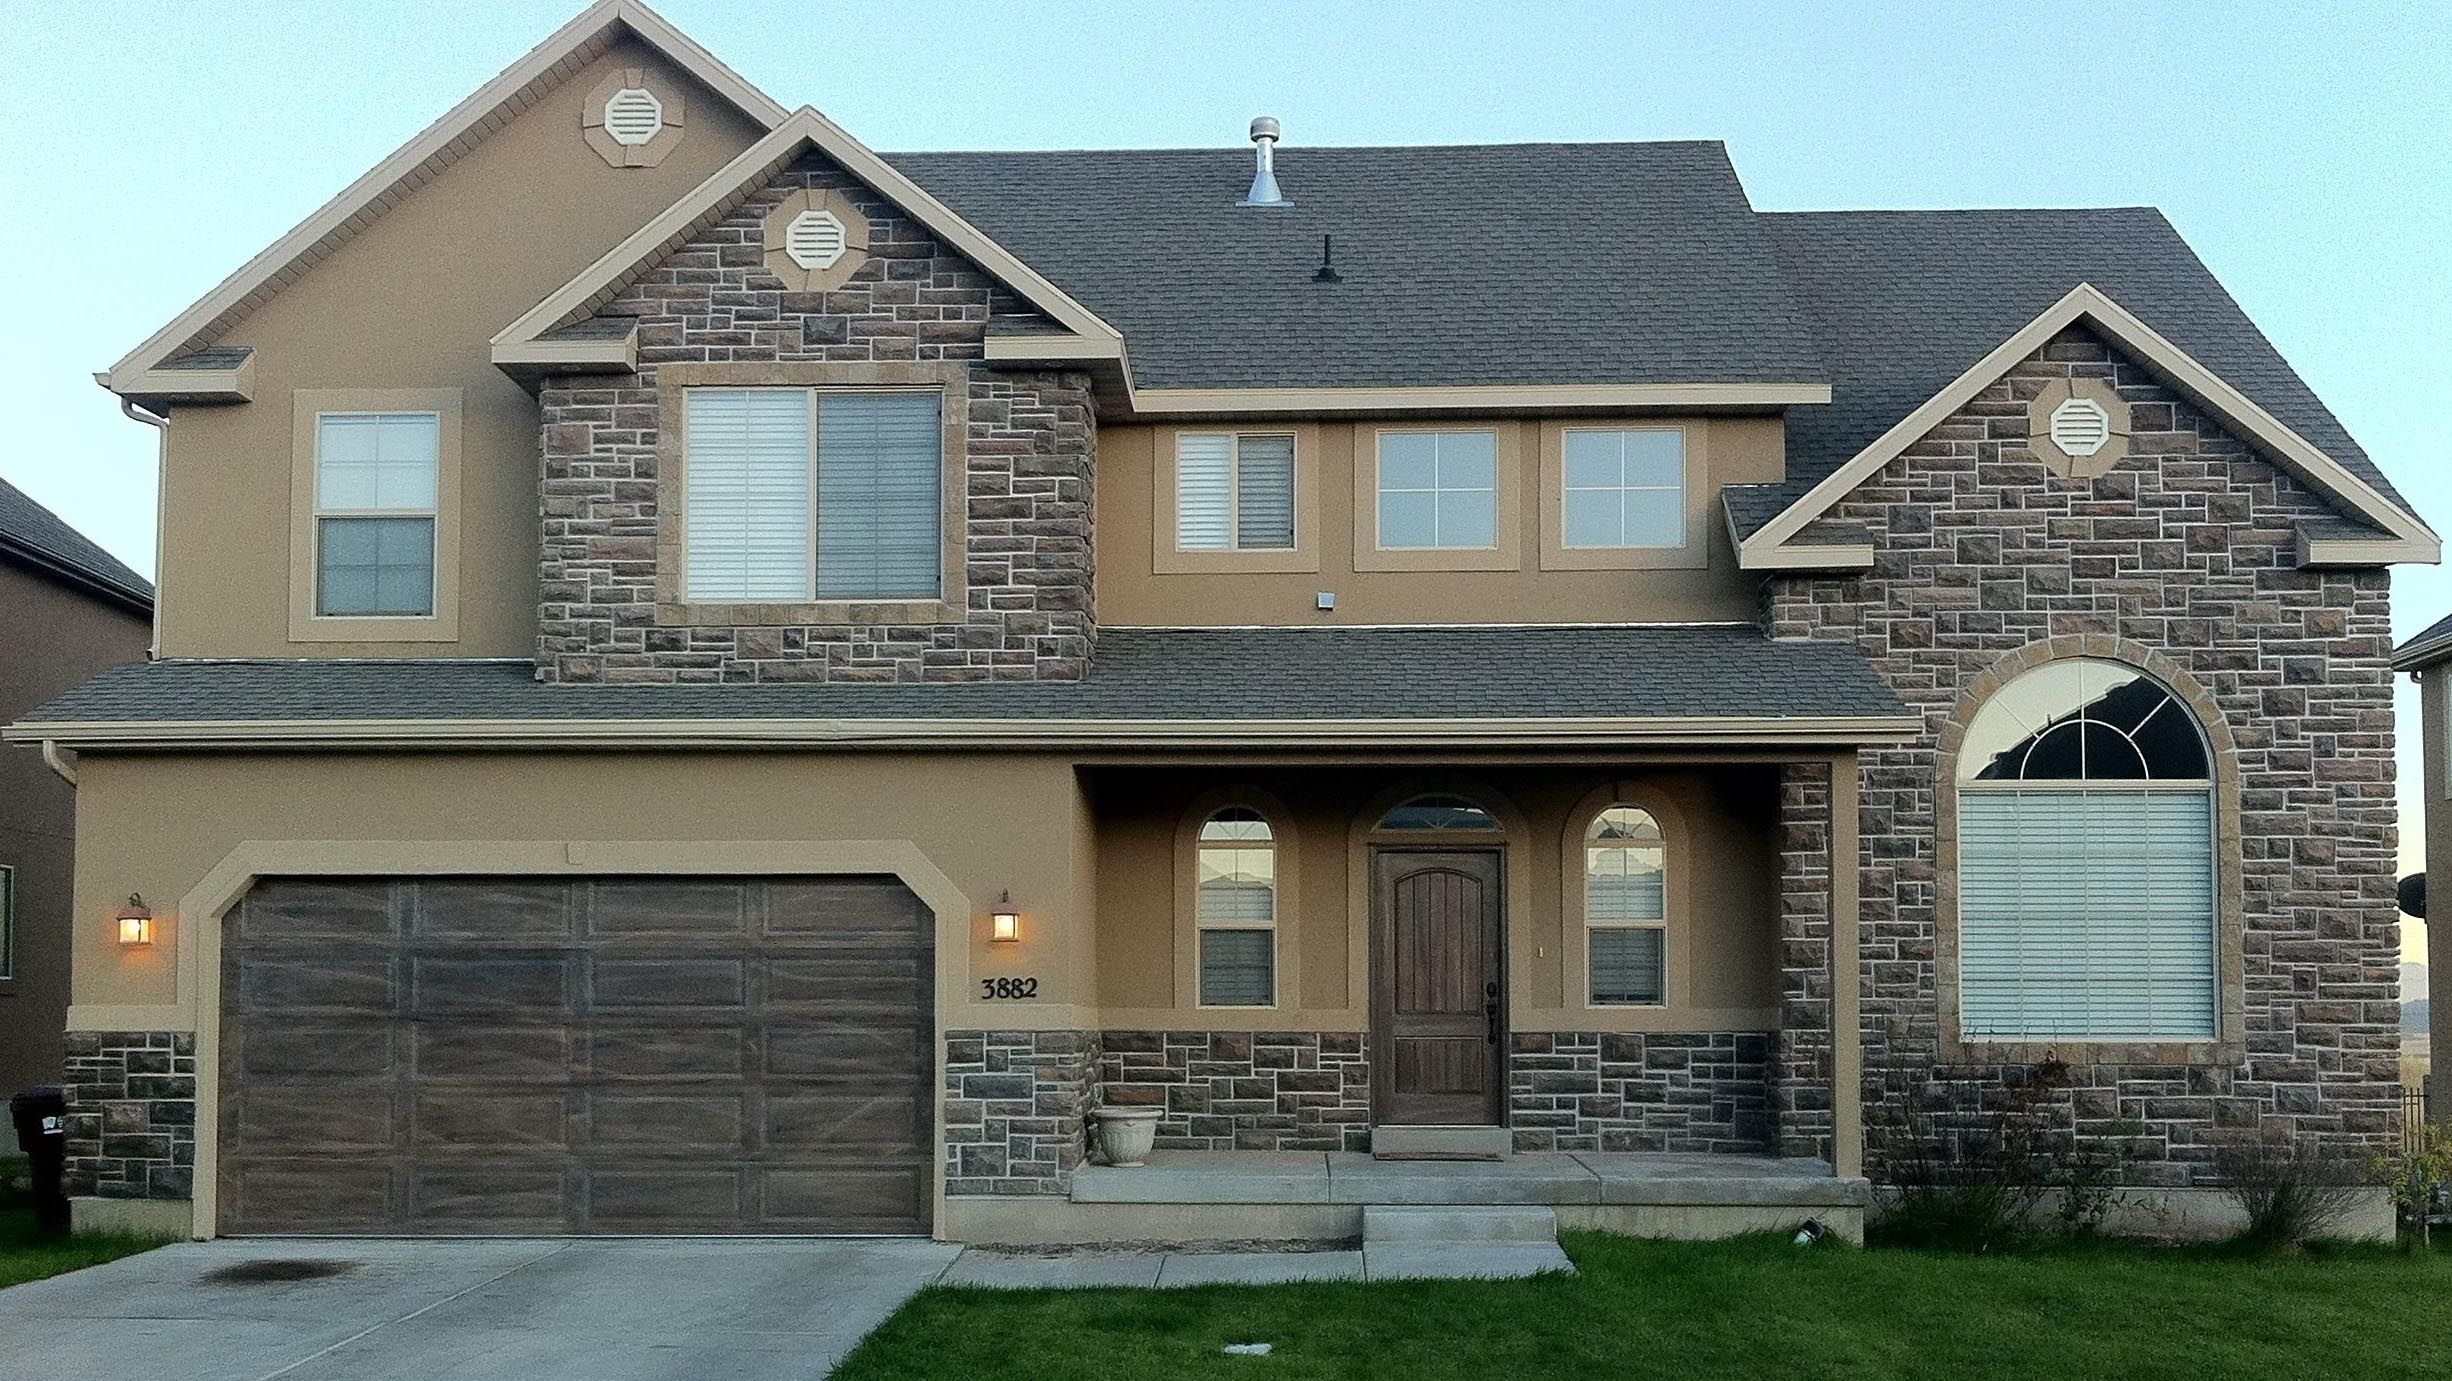 Image result for grey stone and stucco exterior houses | Projects ...